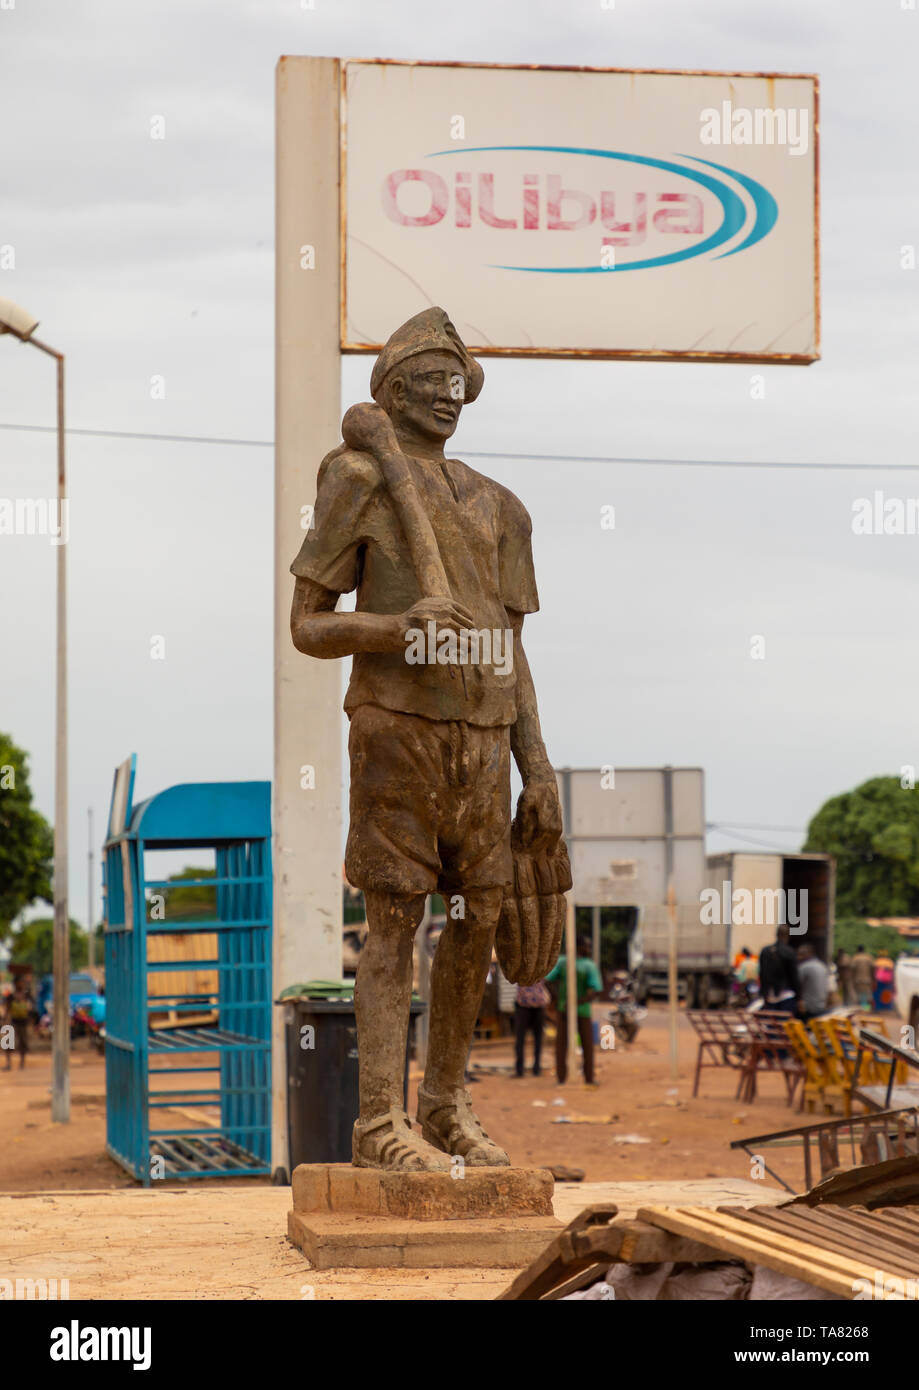 Statue in town at the entrance of a gas station, Savanes district, Kouto, Ivory Coast Stock Photo